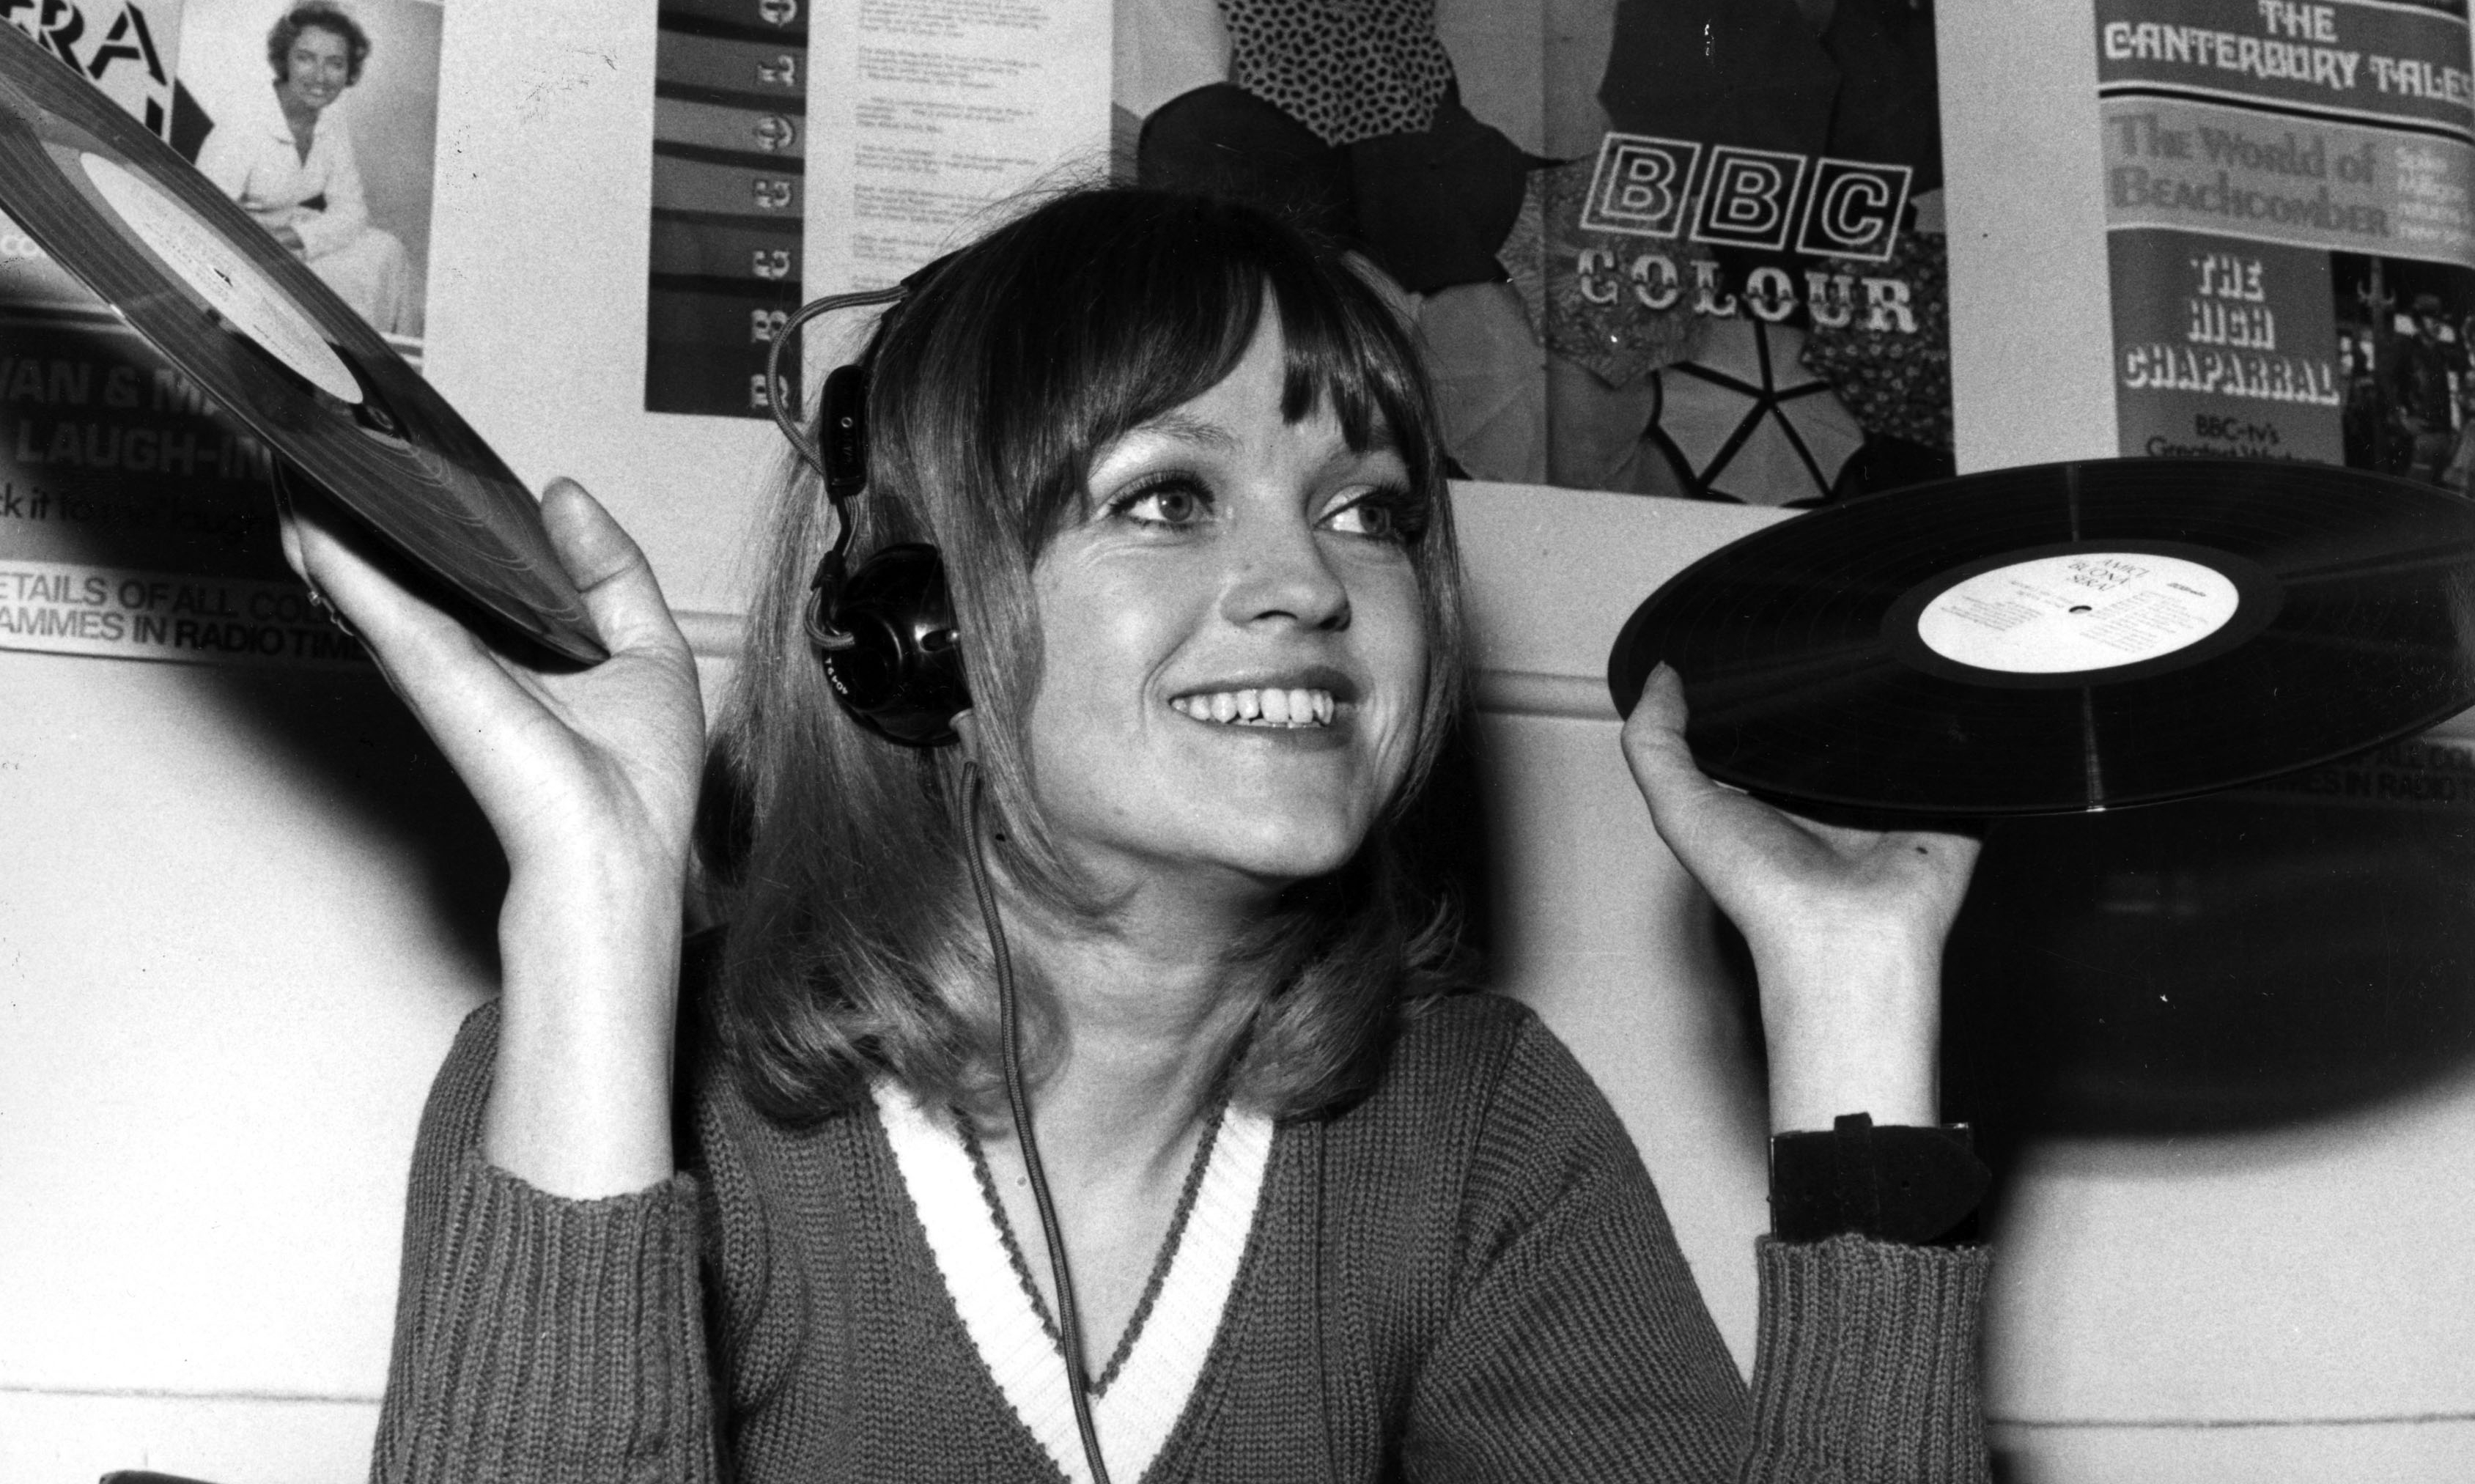 Annie Nightingale Radio 1 S First Female Dj And Caner Of The Year 2001 Music The Guardian